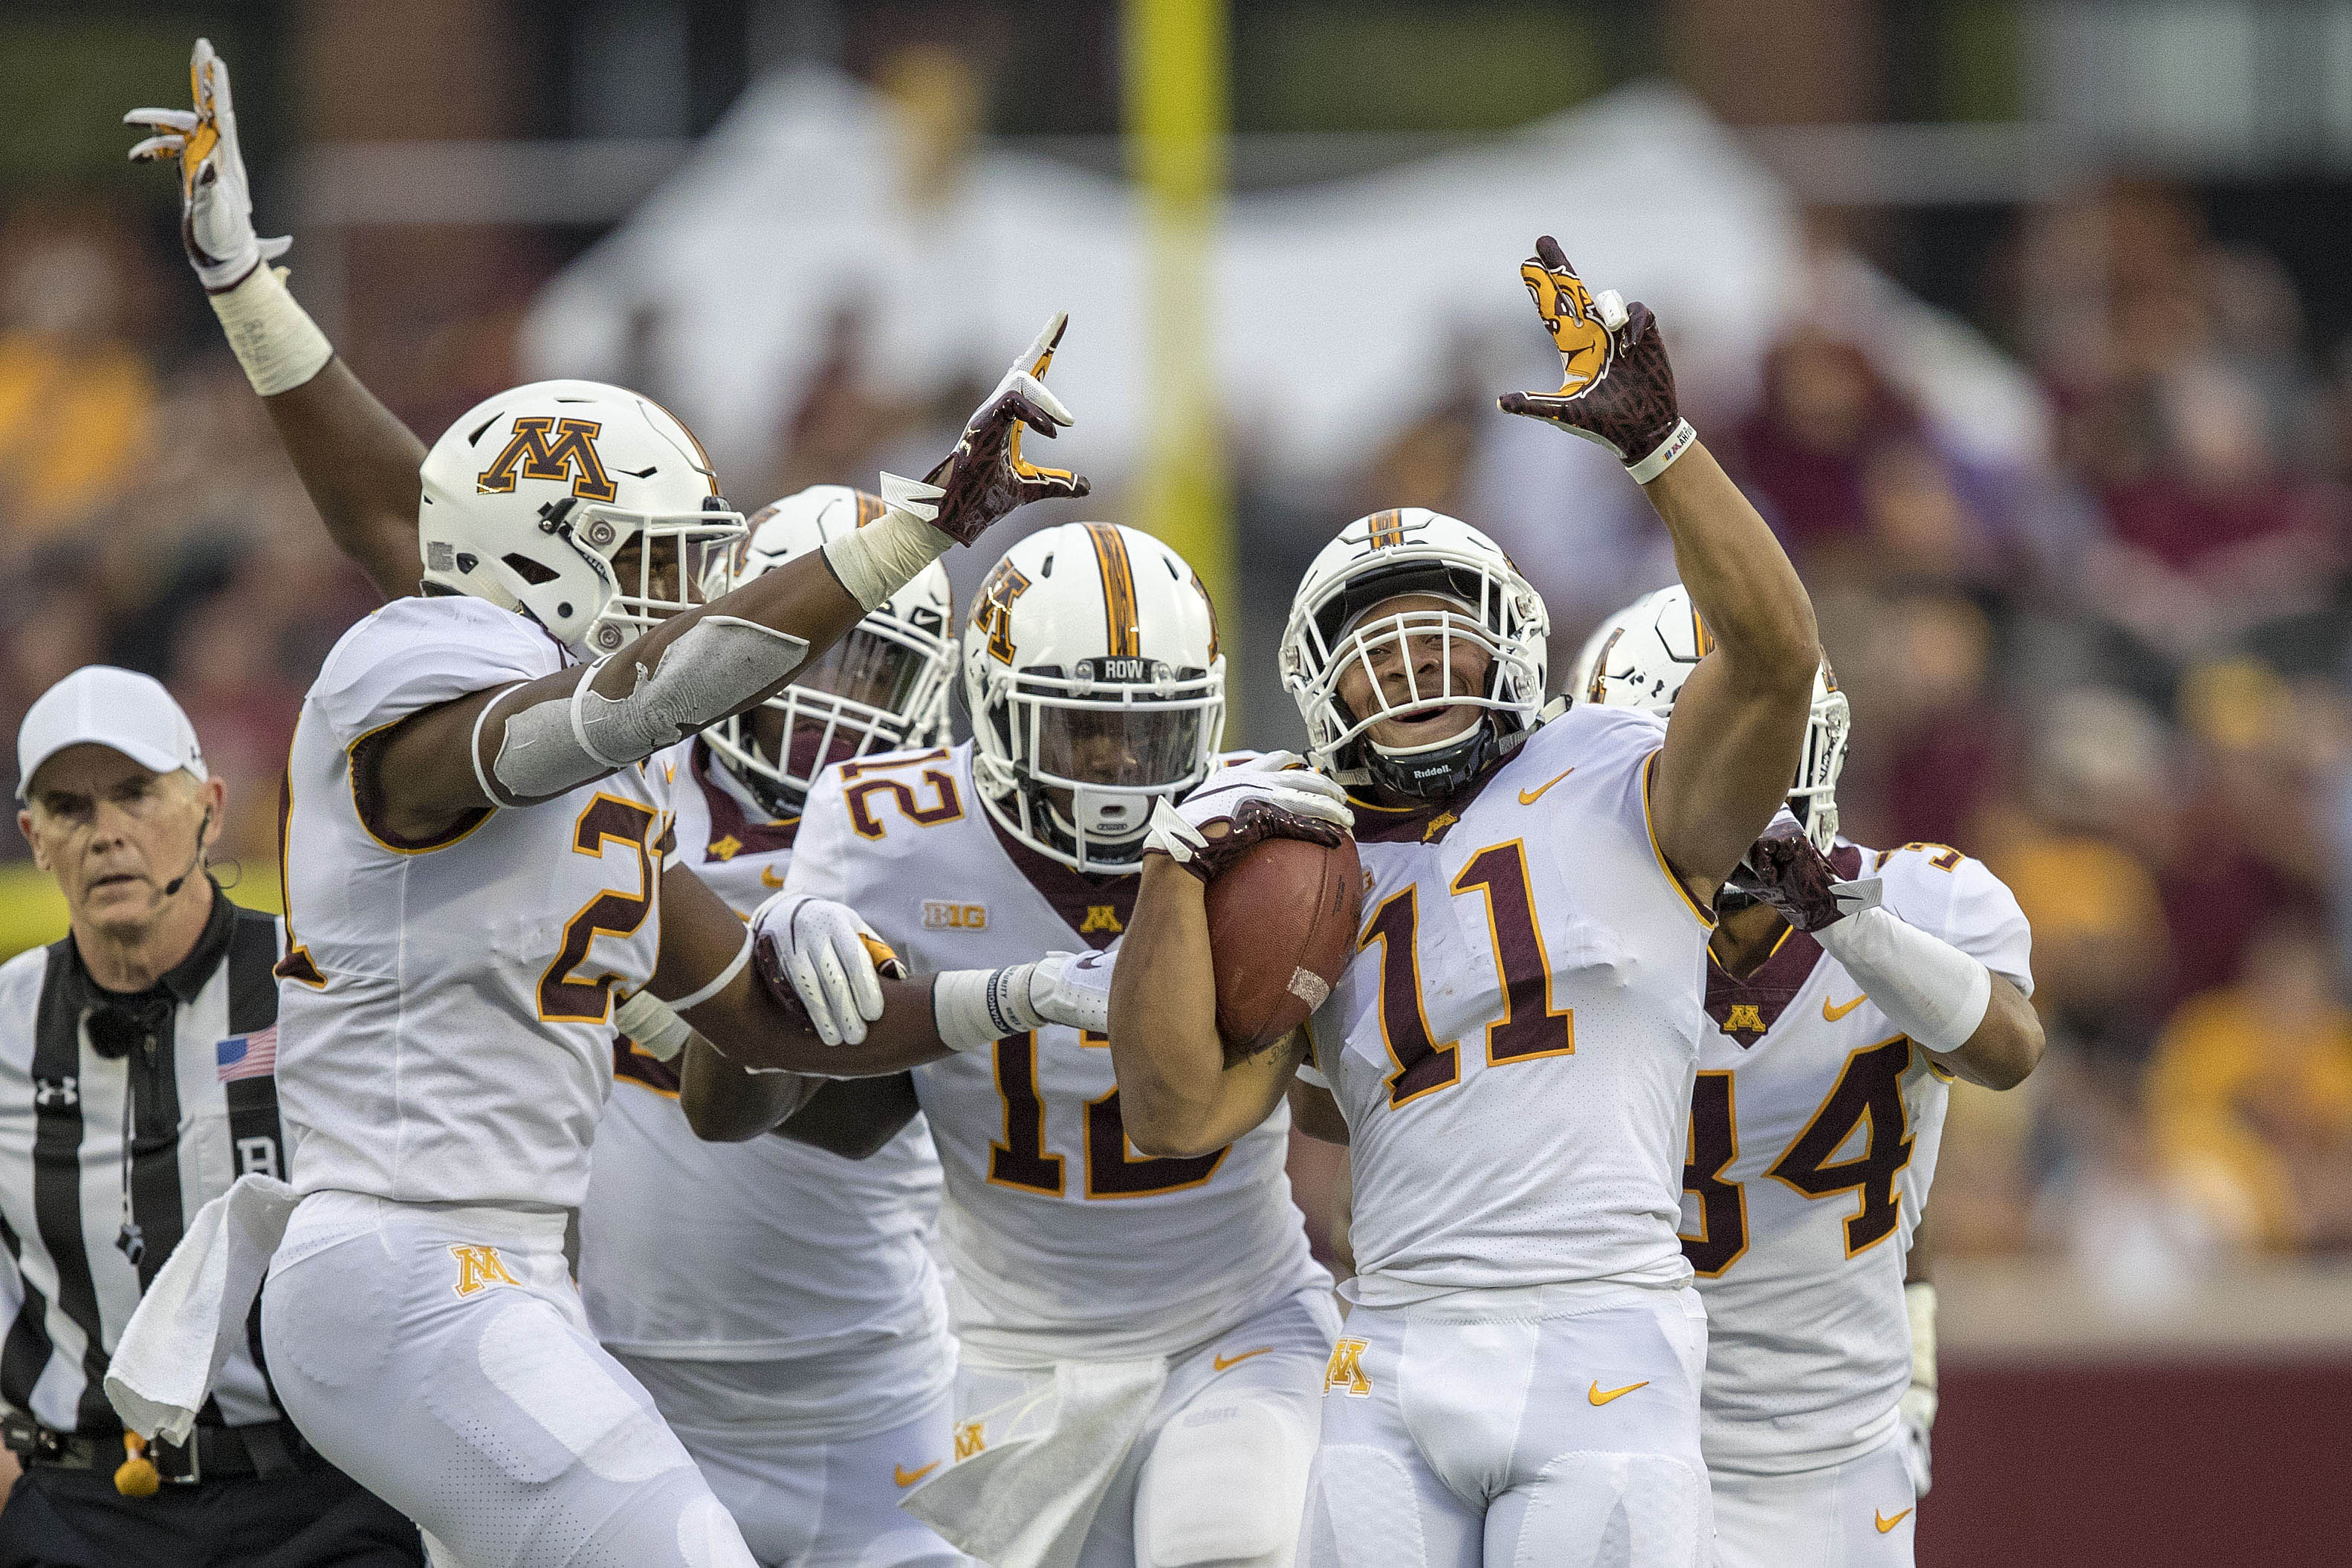 Aug 30, 2018; Minneapolis, MN, USA; Minnesota Golden Gophers defensive back Antoine Winfield Jr. (11) celebrates after intercepting a pass in the first half against the New Mexico State Aggies at TCF Bank Stadium. Mandatory Credit: Jesse Johnson-USA TODAY Sports